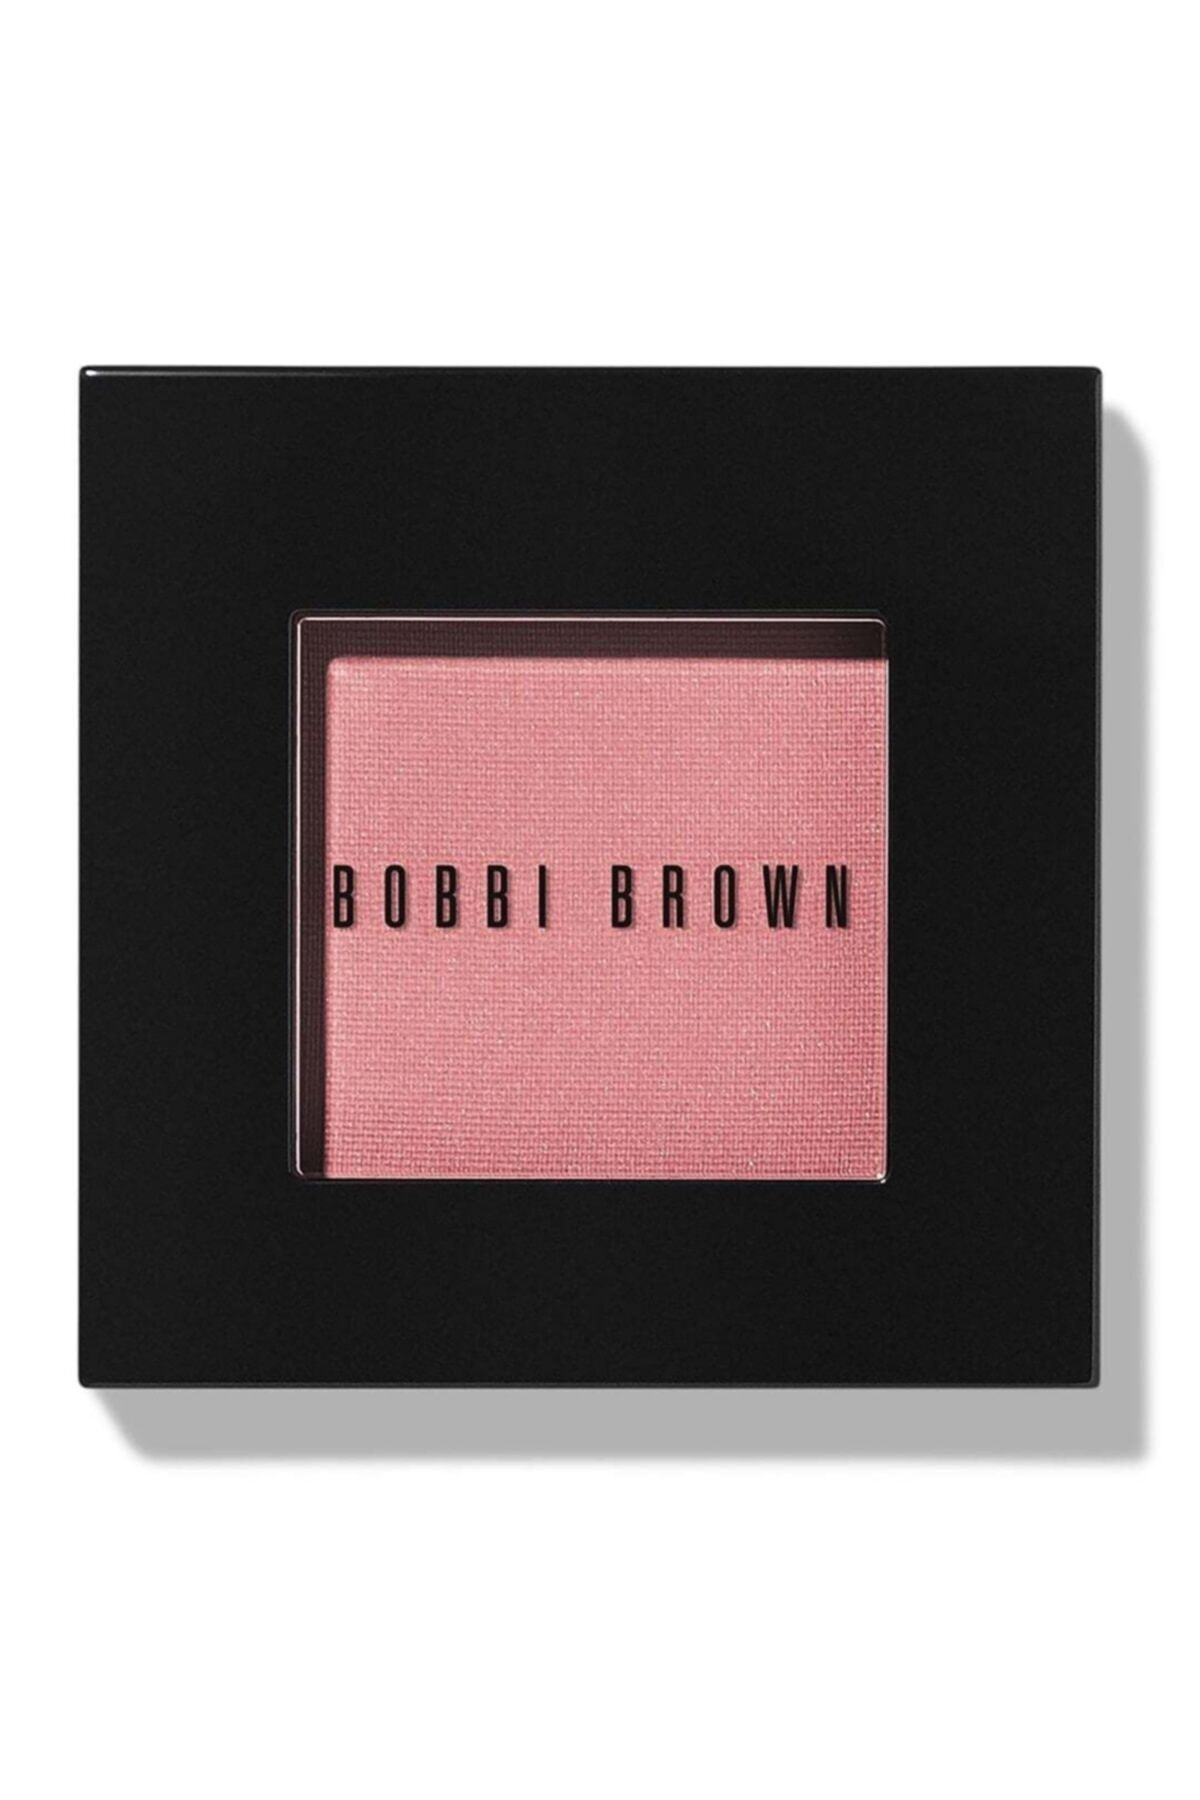 BOBBI BROWN Allık - Blush Nectar 3.7 g 716170059686 1